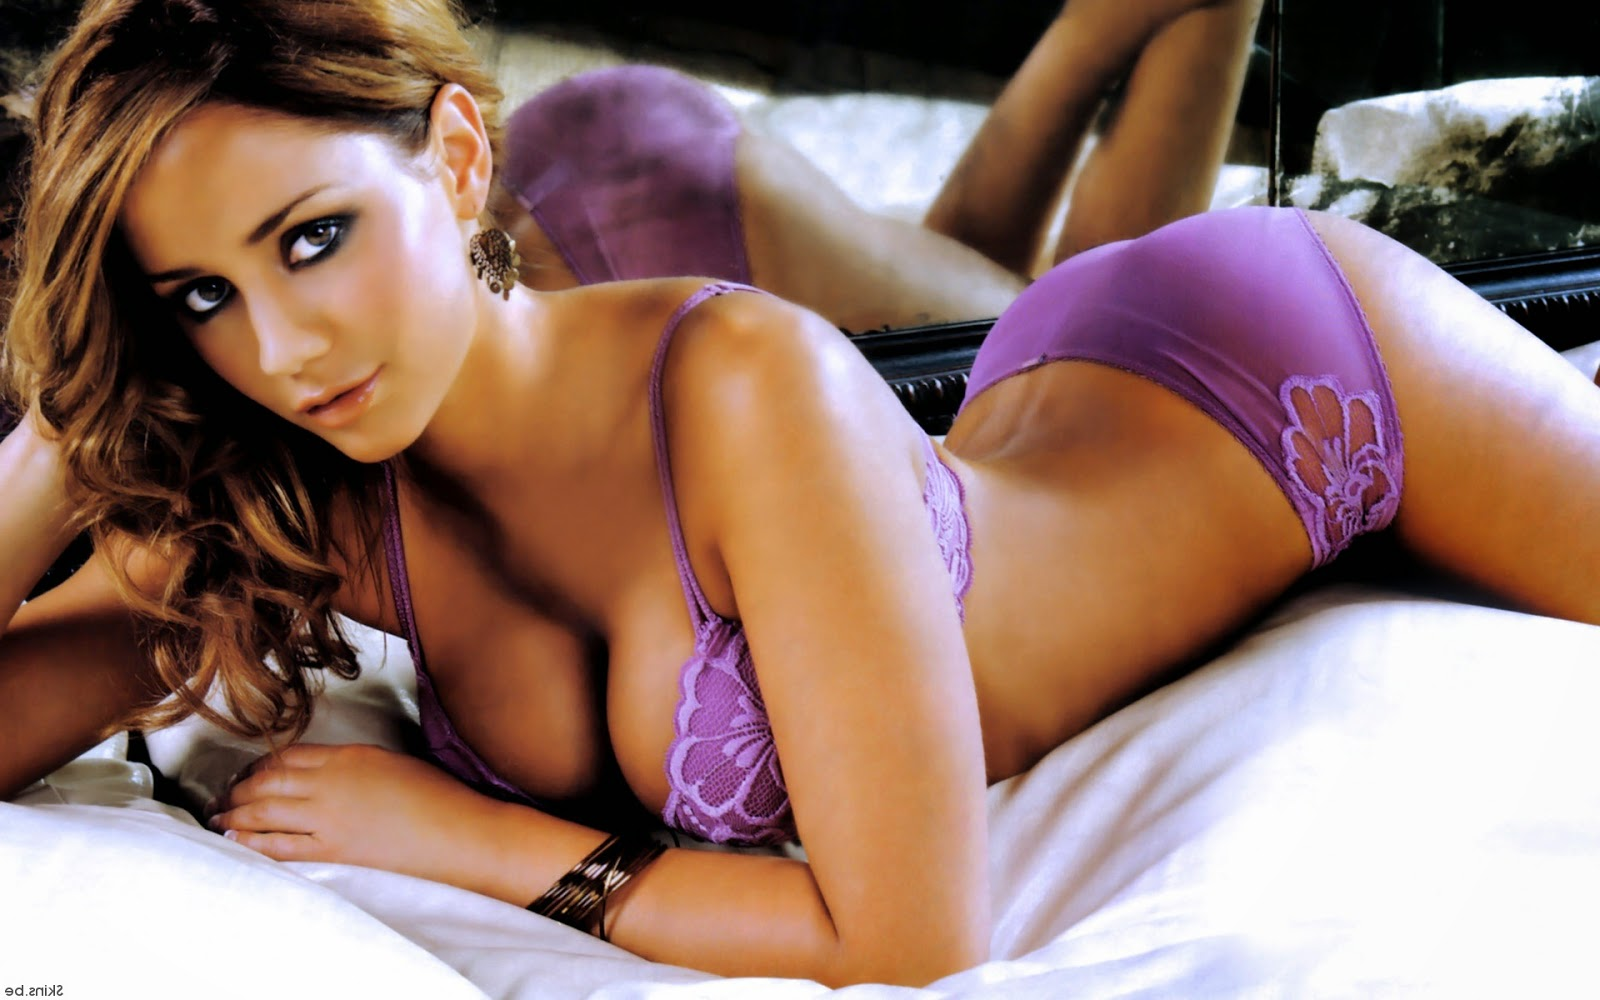 Hot sexy picure of models actress